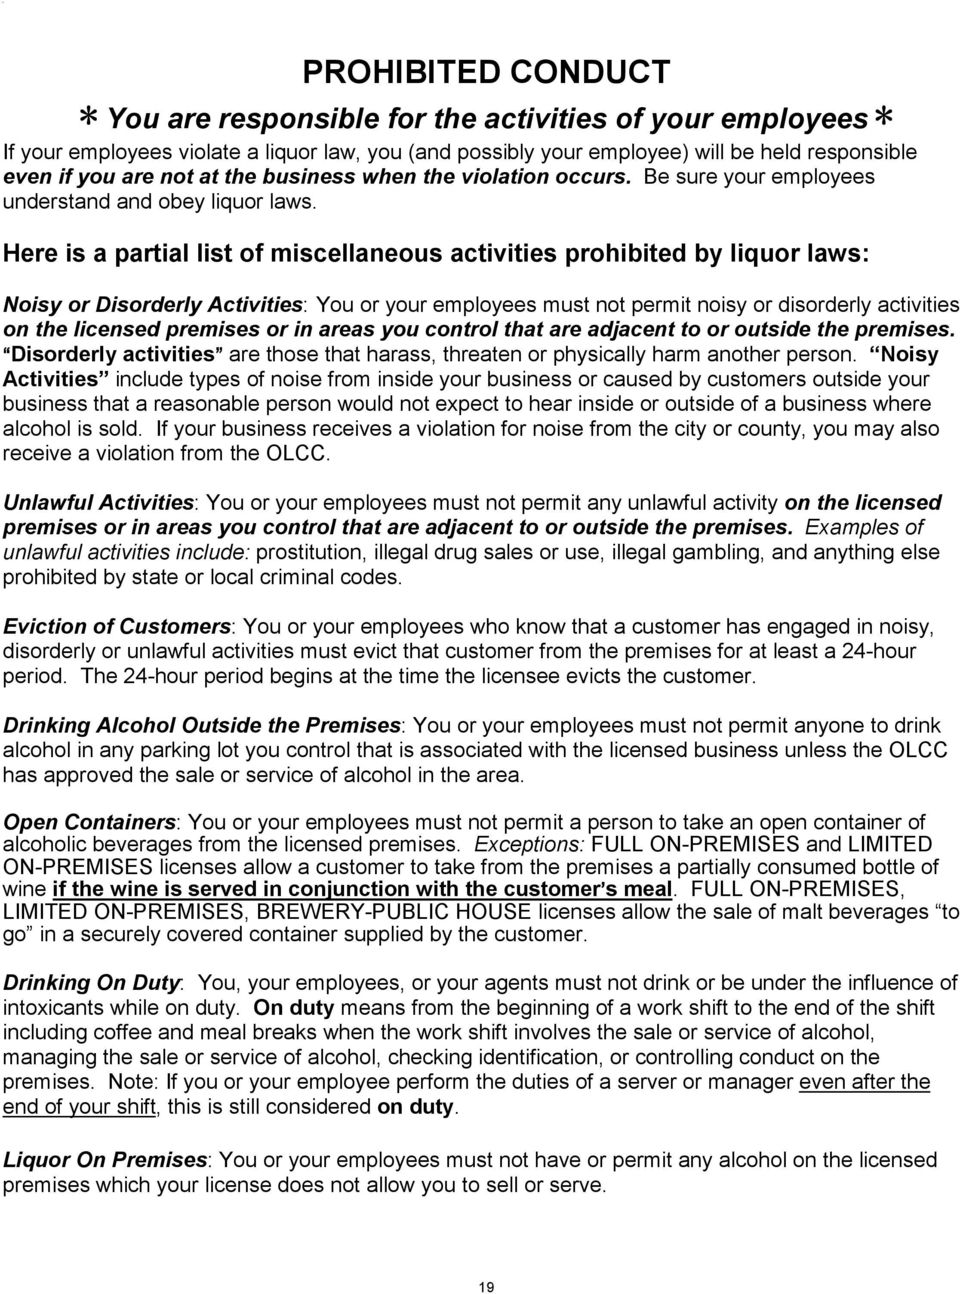 Here is a partial list of miscellaneous activities prohibited by liquor laws: Noisy or Disorderly Activities: You or your employees must not permit noisy or disorderly activities on the licensed